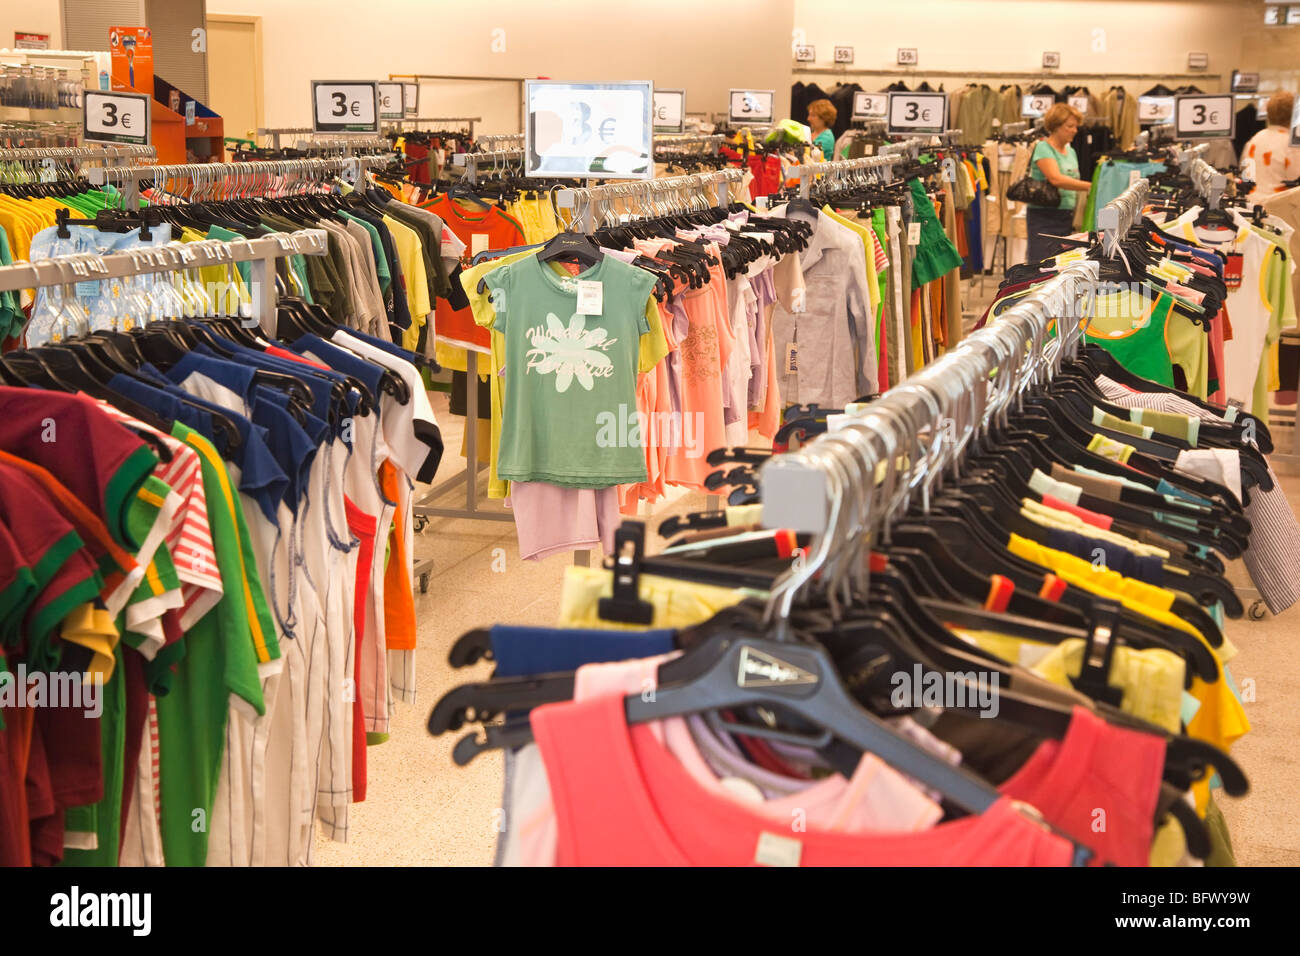 Bargain clothing for sale in SuperCor outlet of El Corte Ingles, Torremolinos, Costa del Sol, Malaga Province, Spain - Stock Image